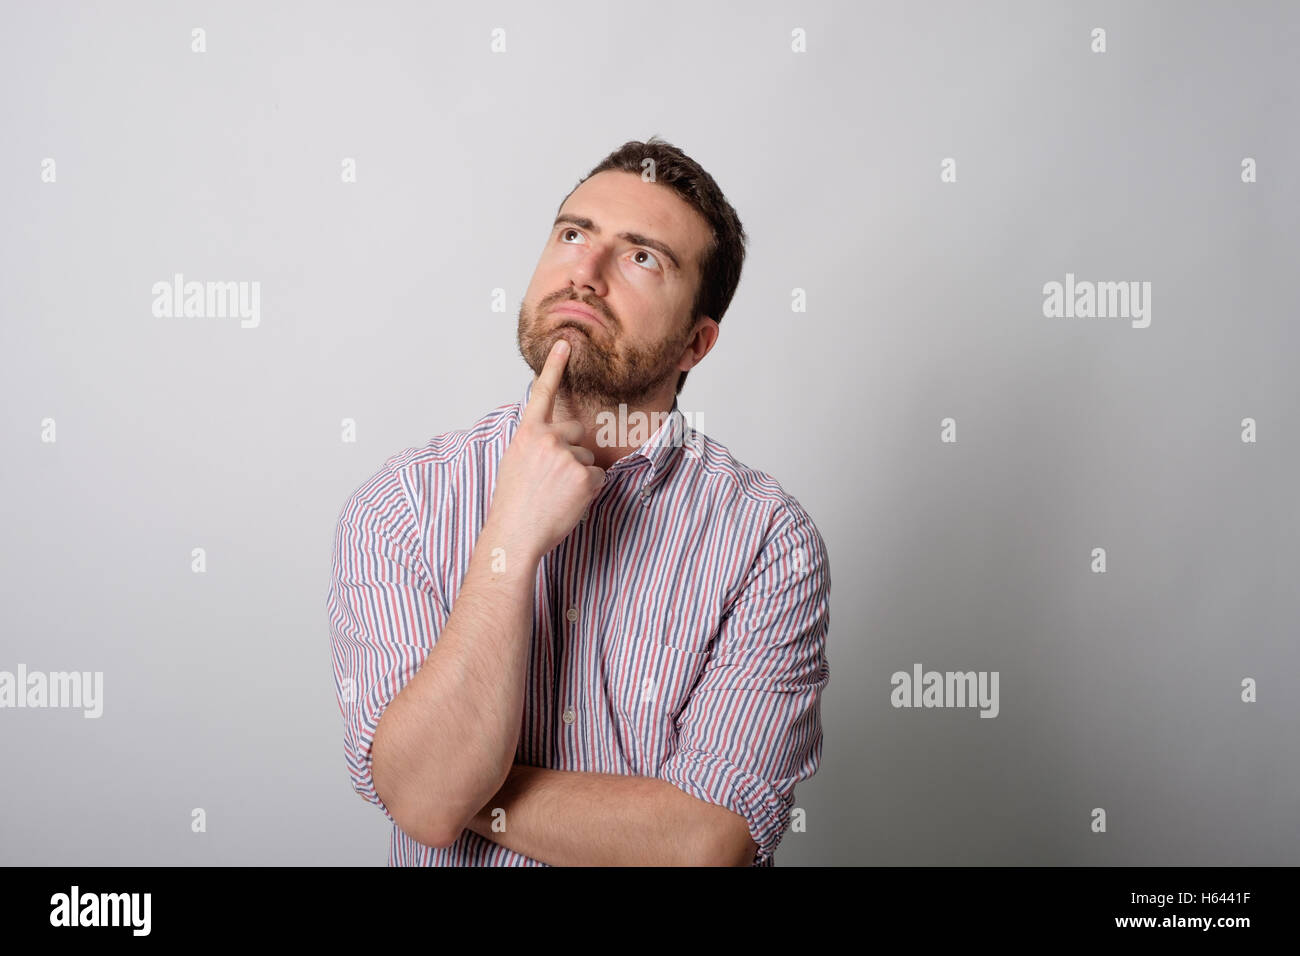 Resigned man on gray background - Stock Image